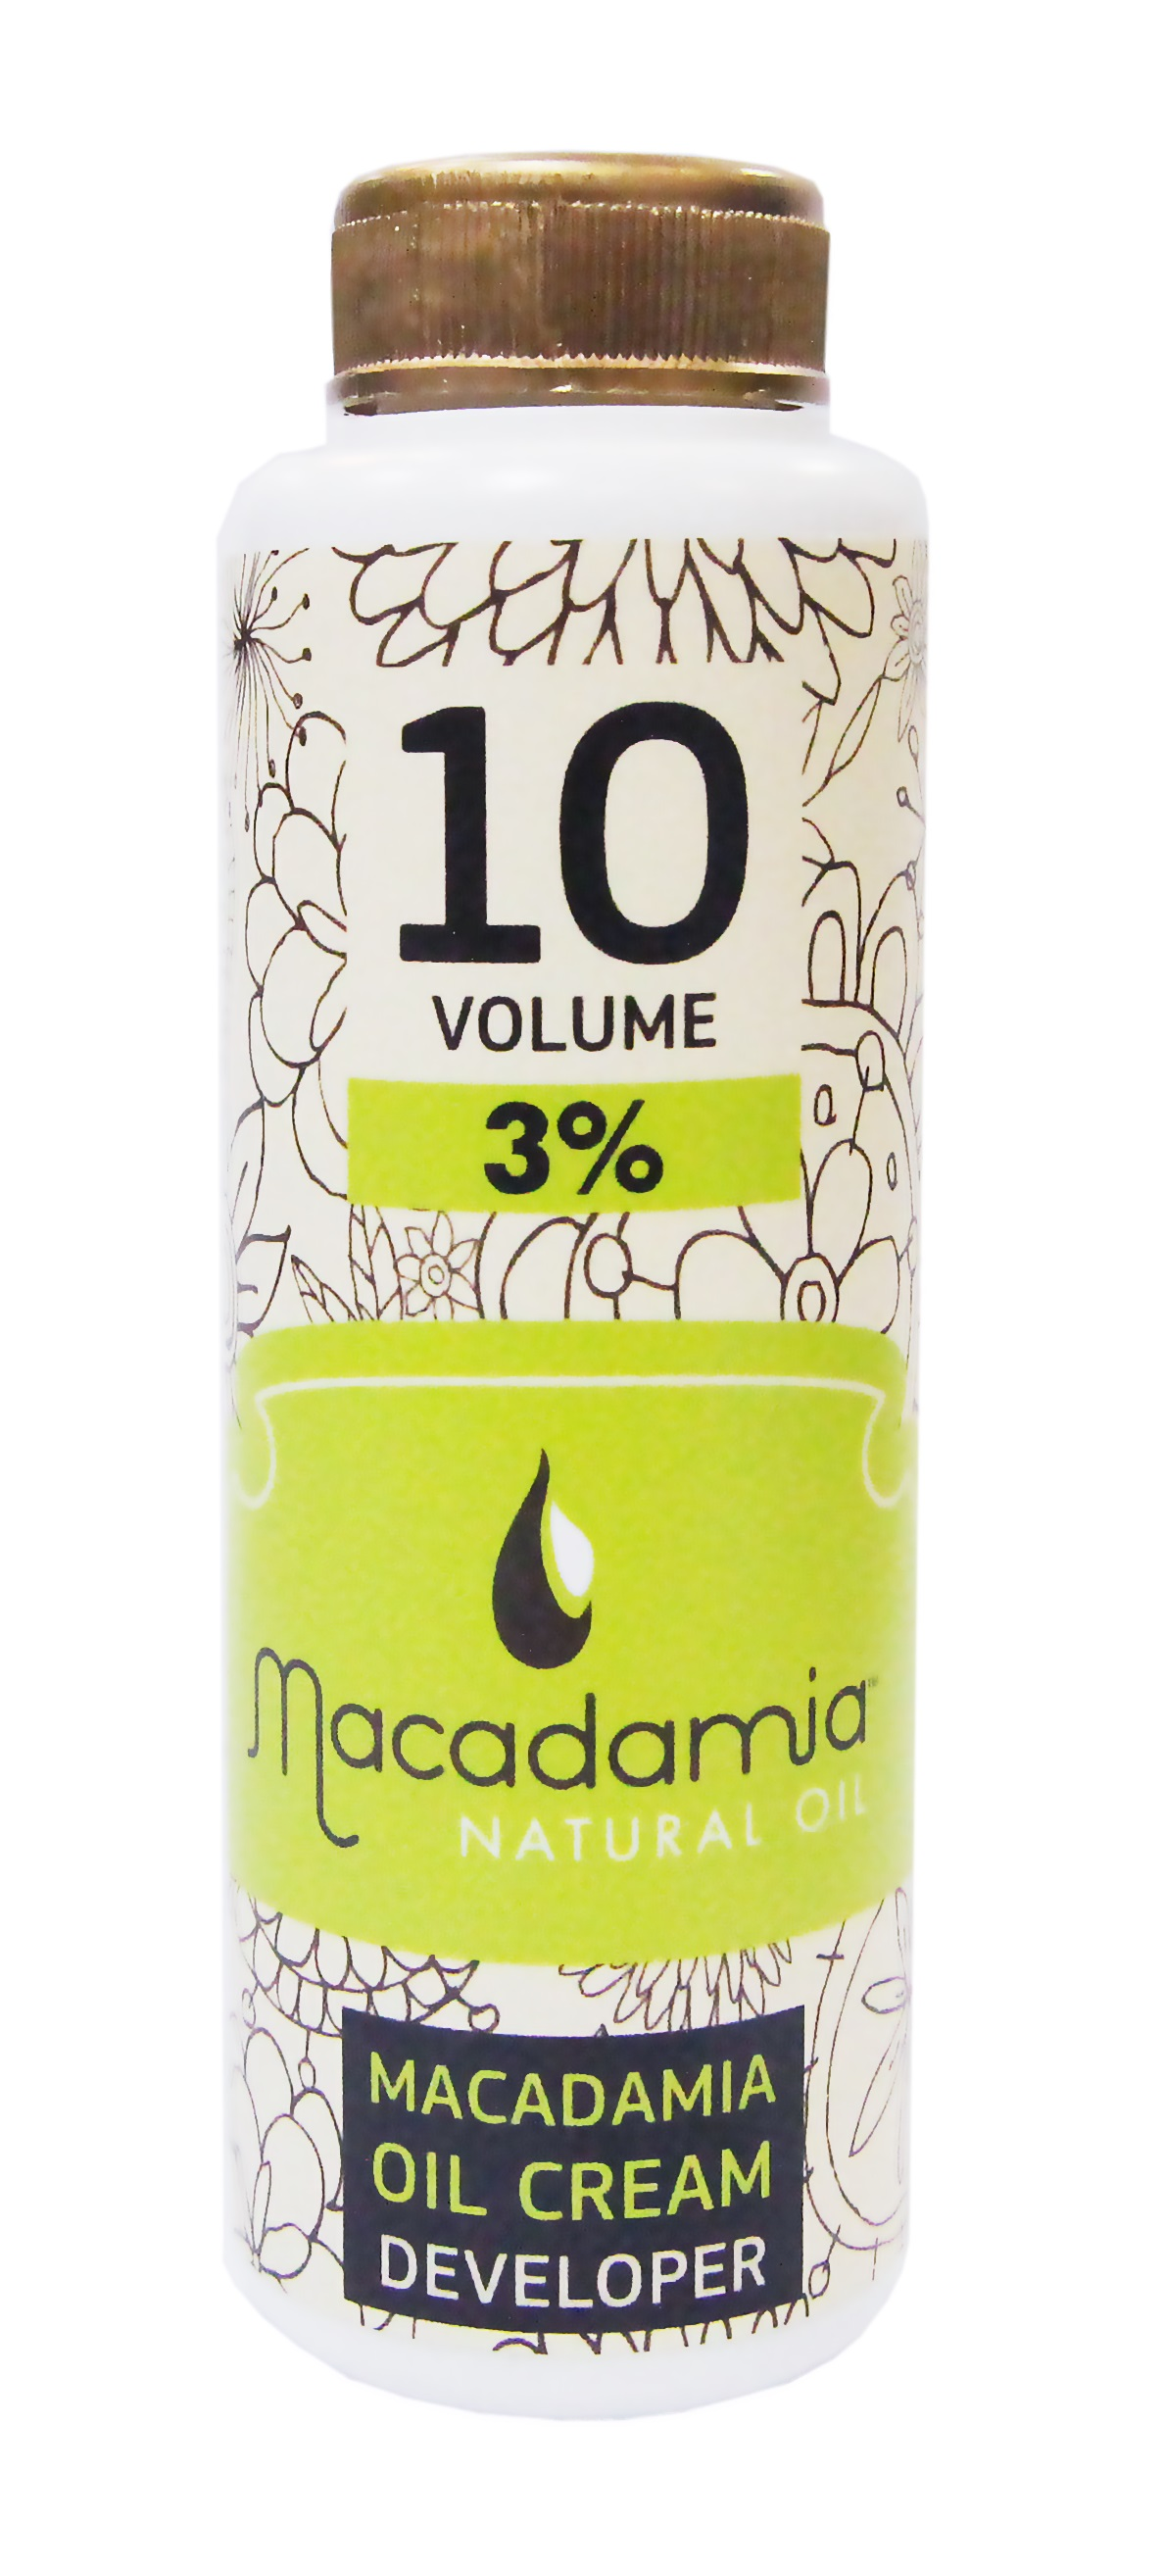 MACADAMIA Natural Oil Окислитель 3% (10 vol) / Cream Color 100 мл macadamia natural oil несмываемый 100 мл